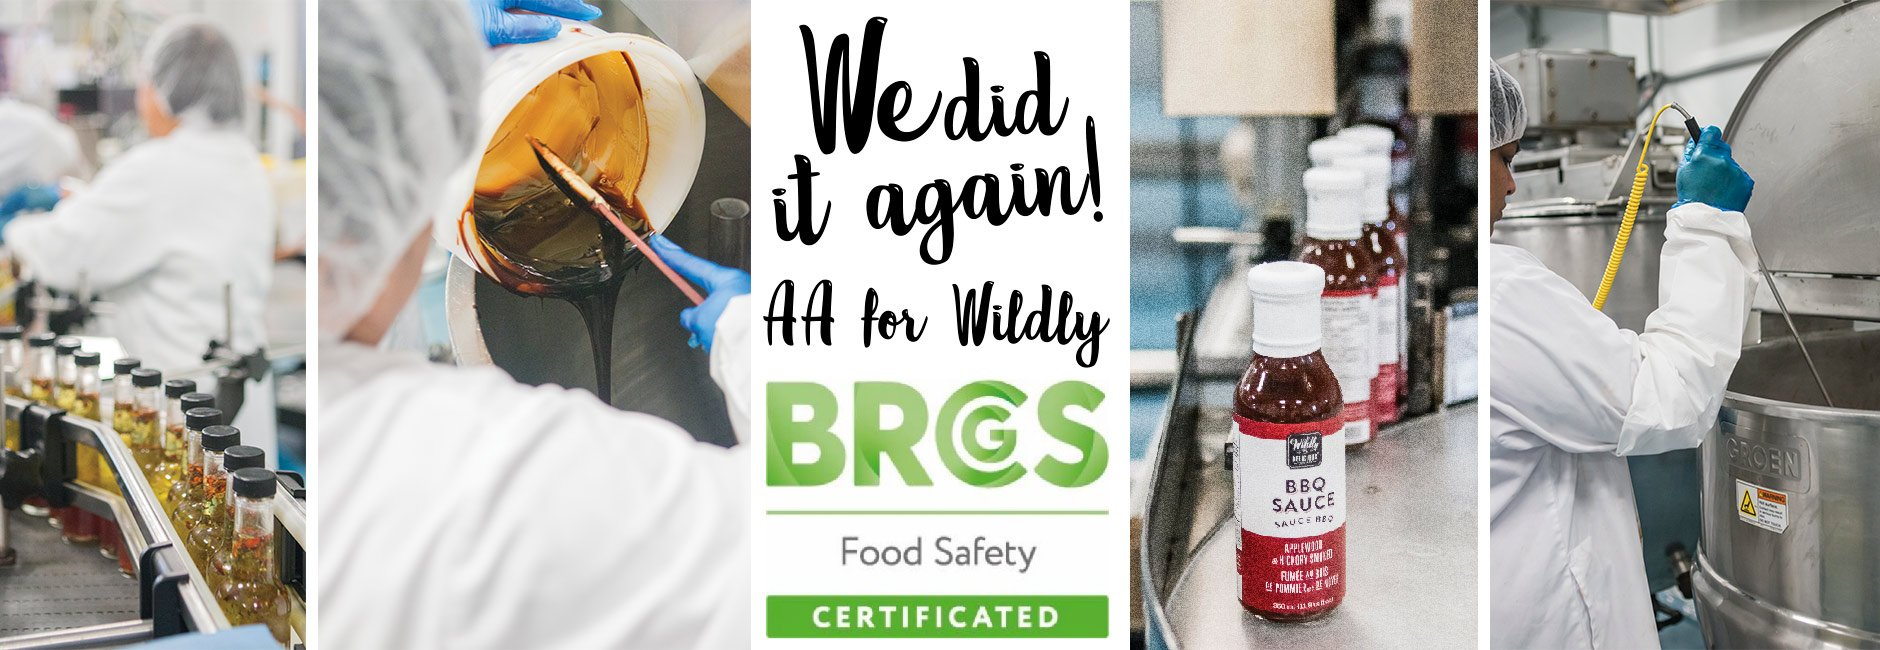 We did it again! Wildly is AA for BRC Food.